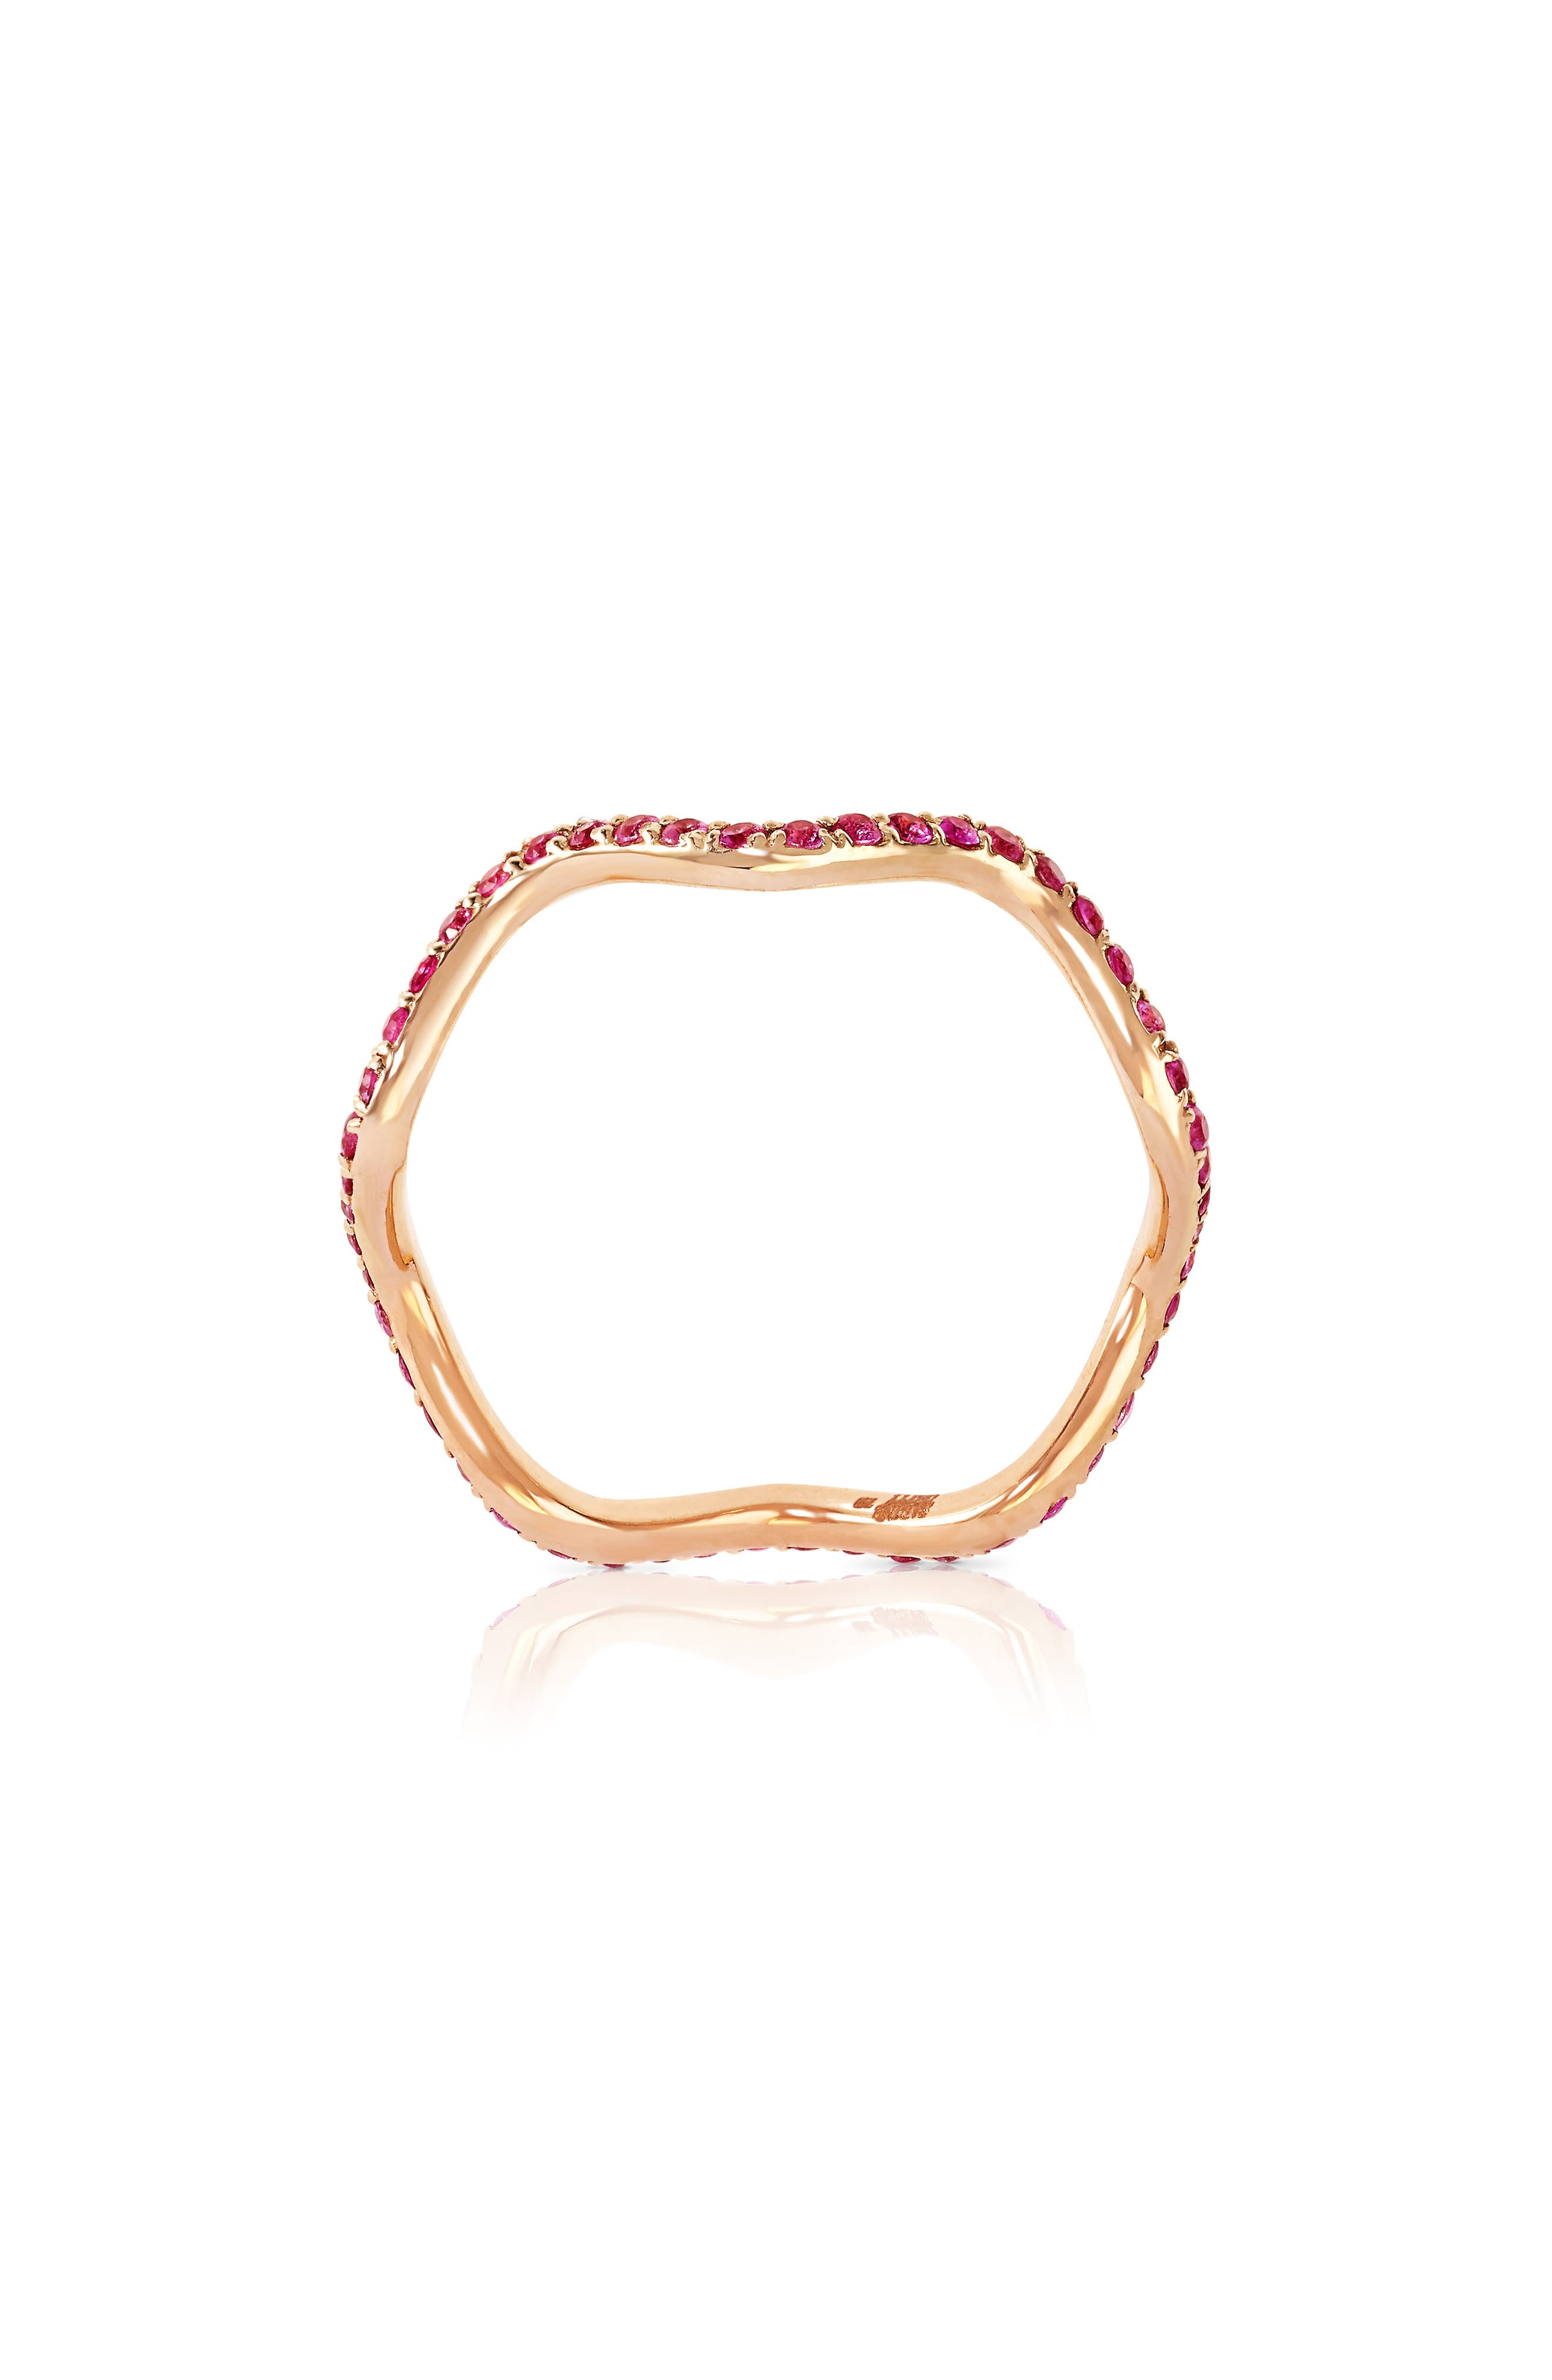 Baby Memphis Pink Sapphire Wave Band Ring,                             Main thumbnail 1, color,                             ROSE GOLD PINK SAPPHIRE